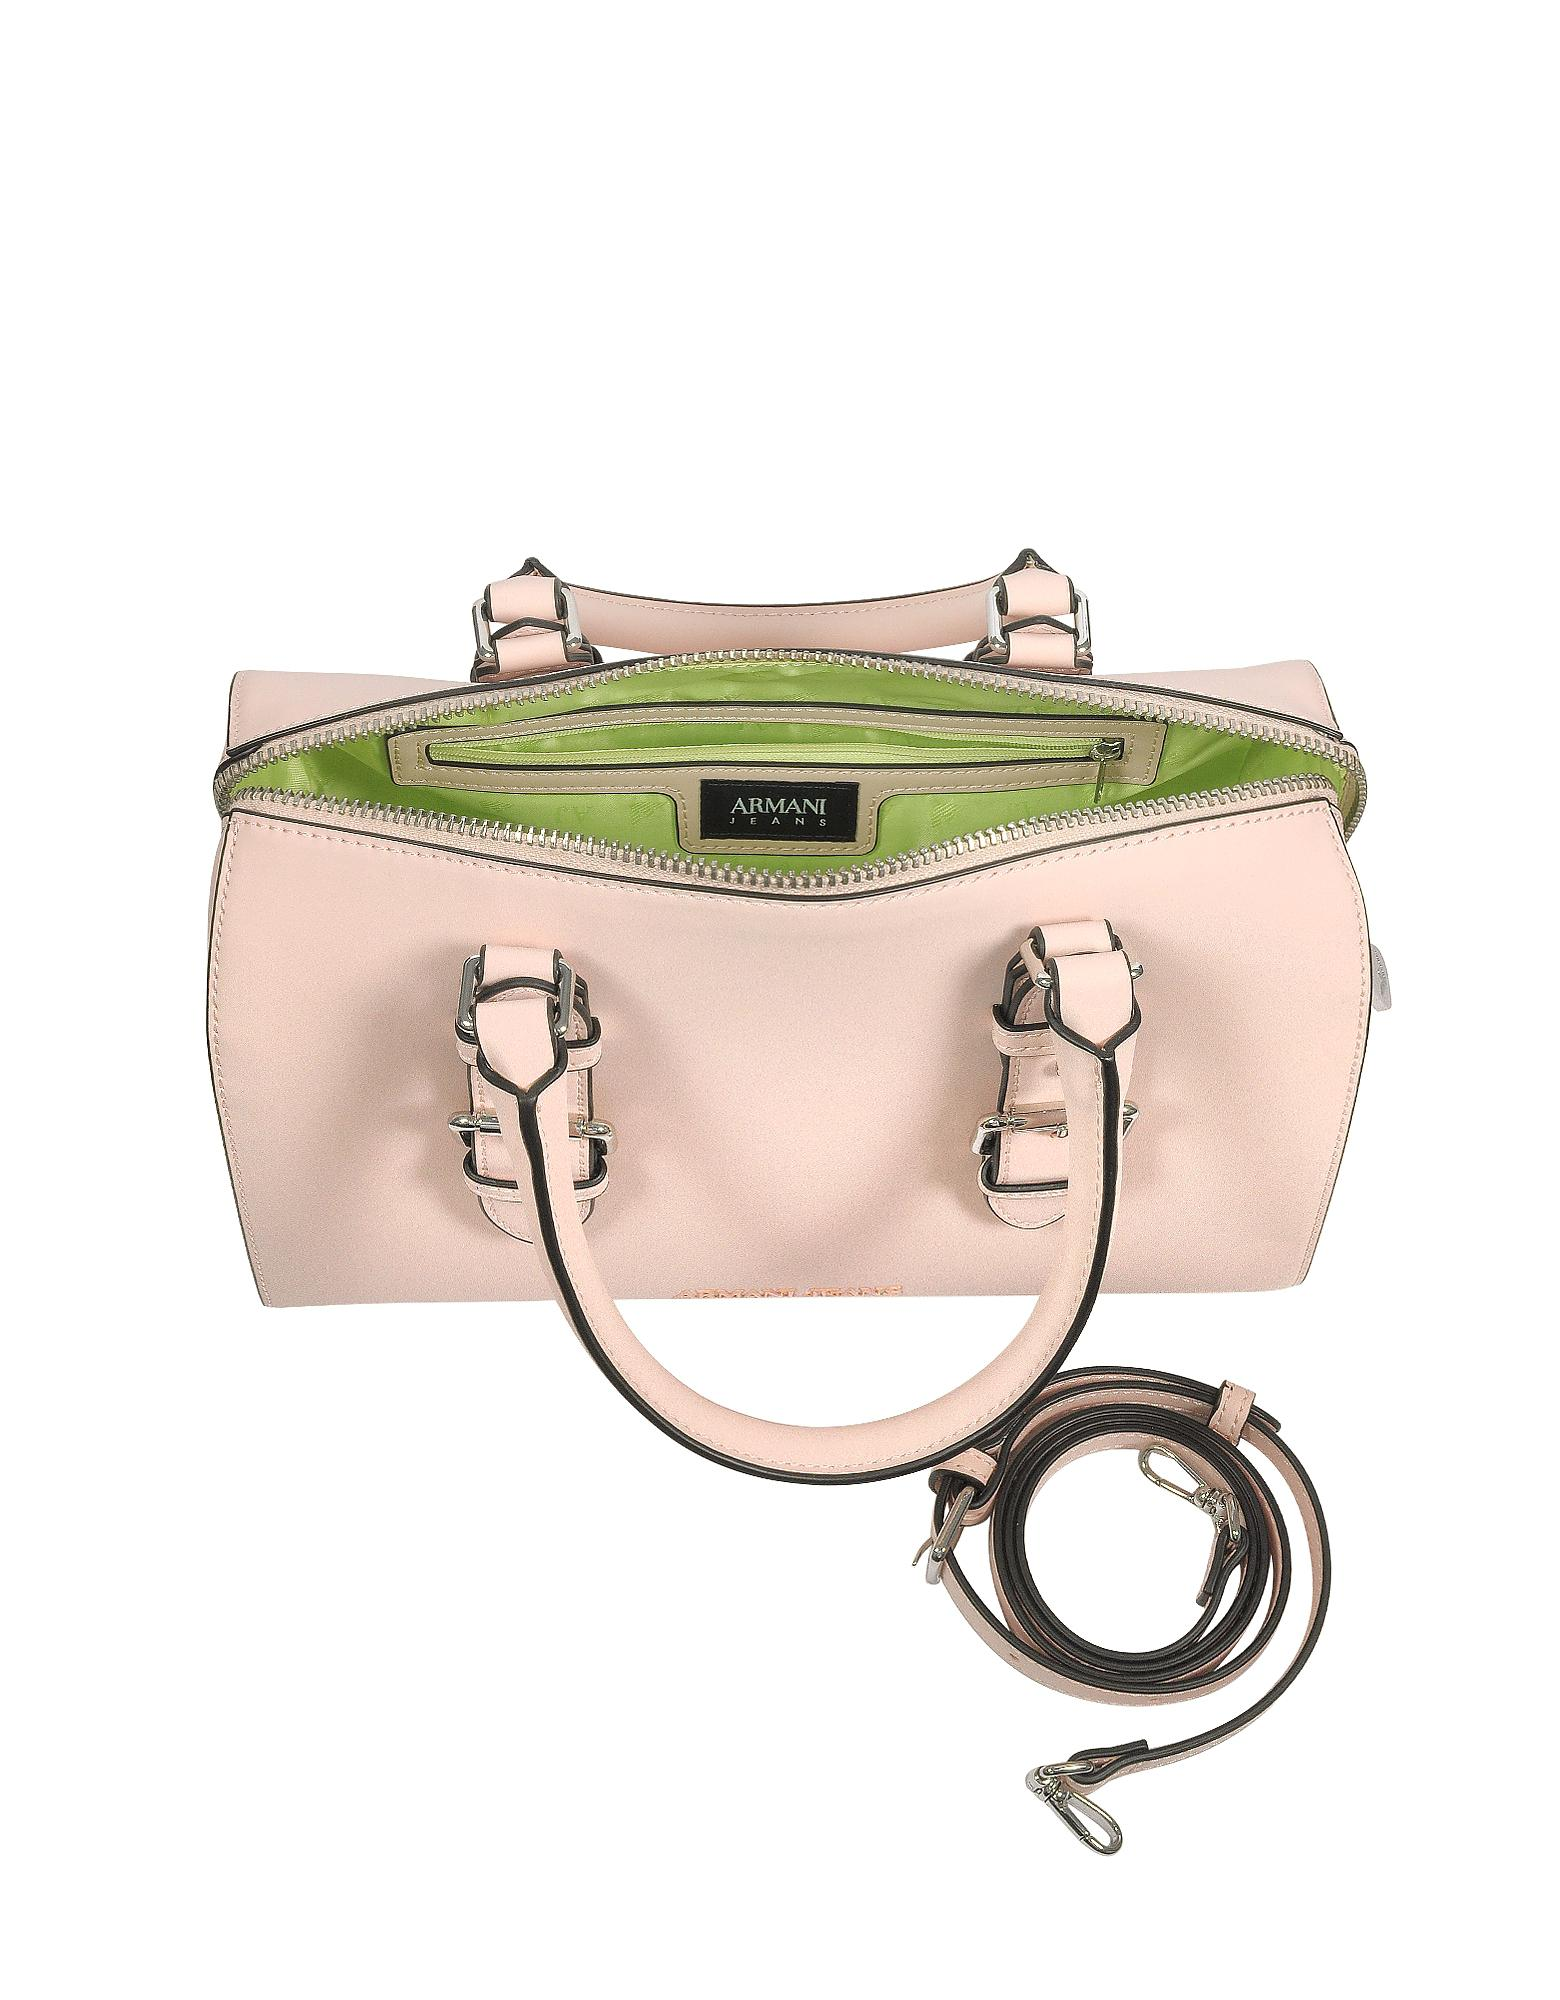 Lyst - Armani Jeans New Light Pink Eco Leather Satchel Bag in Pink e32f5dd86327e